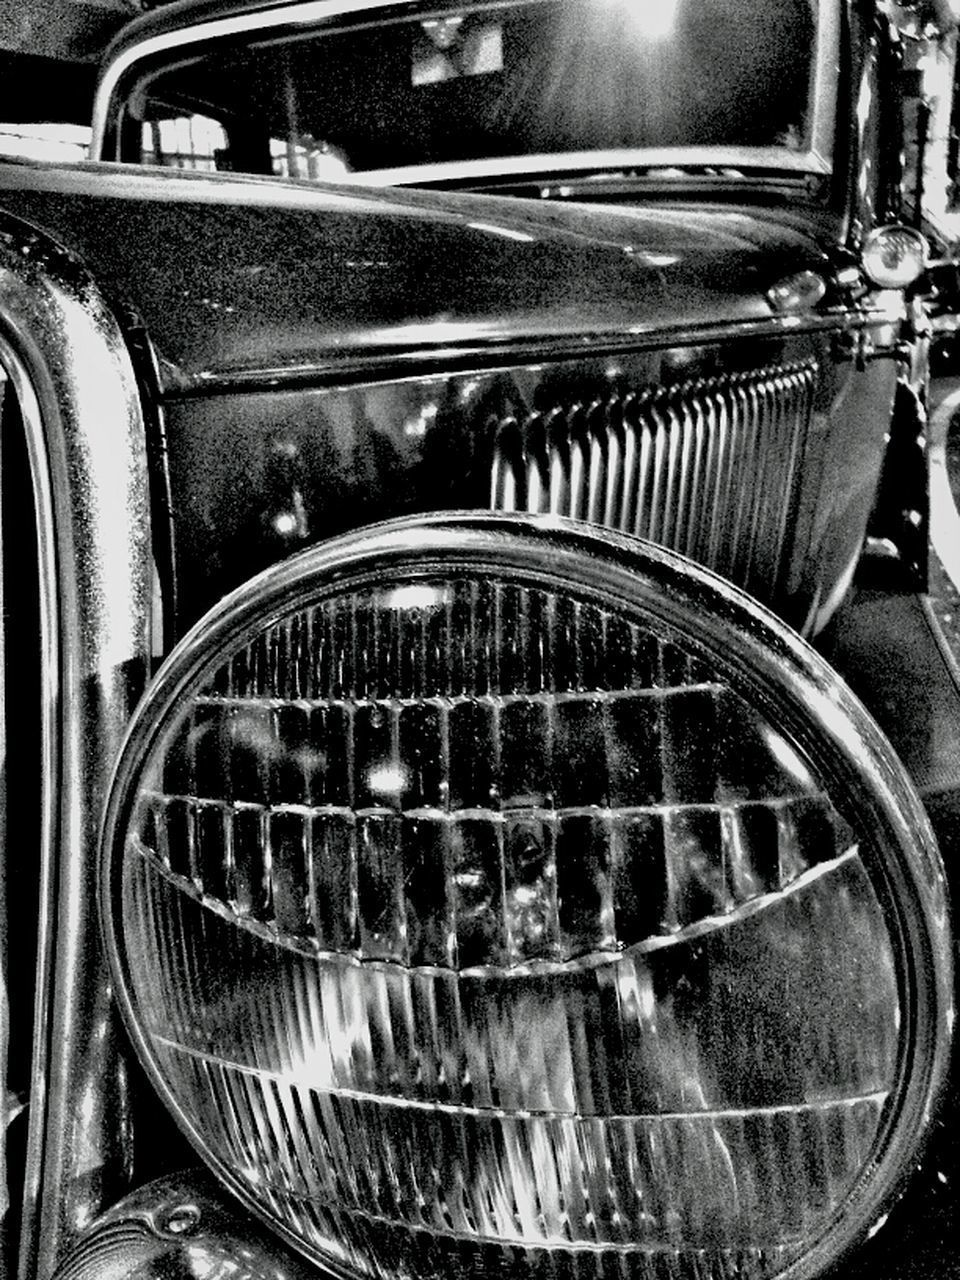 transportation, land vehicle, mode of transport, car, metal, old-fashioned, retro styled, old, vintage car, headlight, close-up, indoors, vehicle part, part of, metallic, machine part, travel, stationary, shiny, abandoned